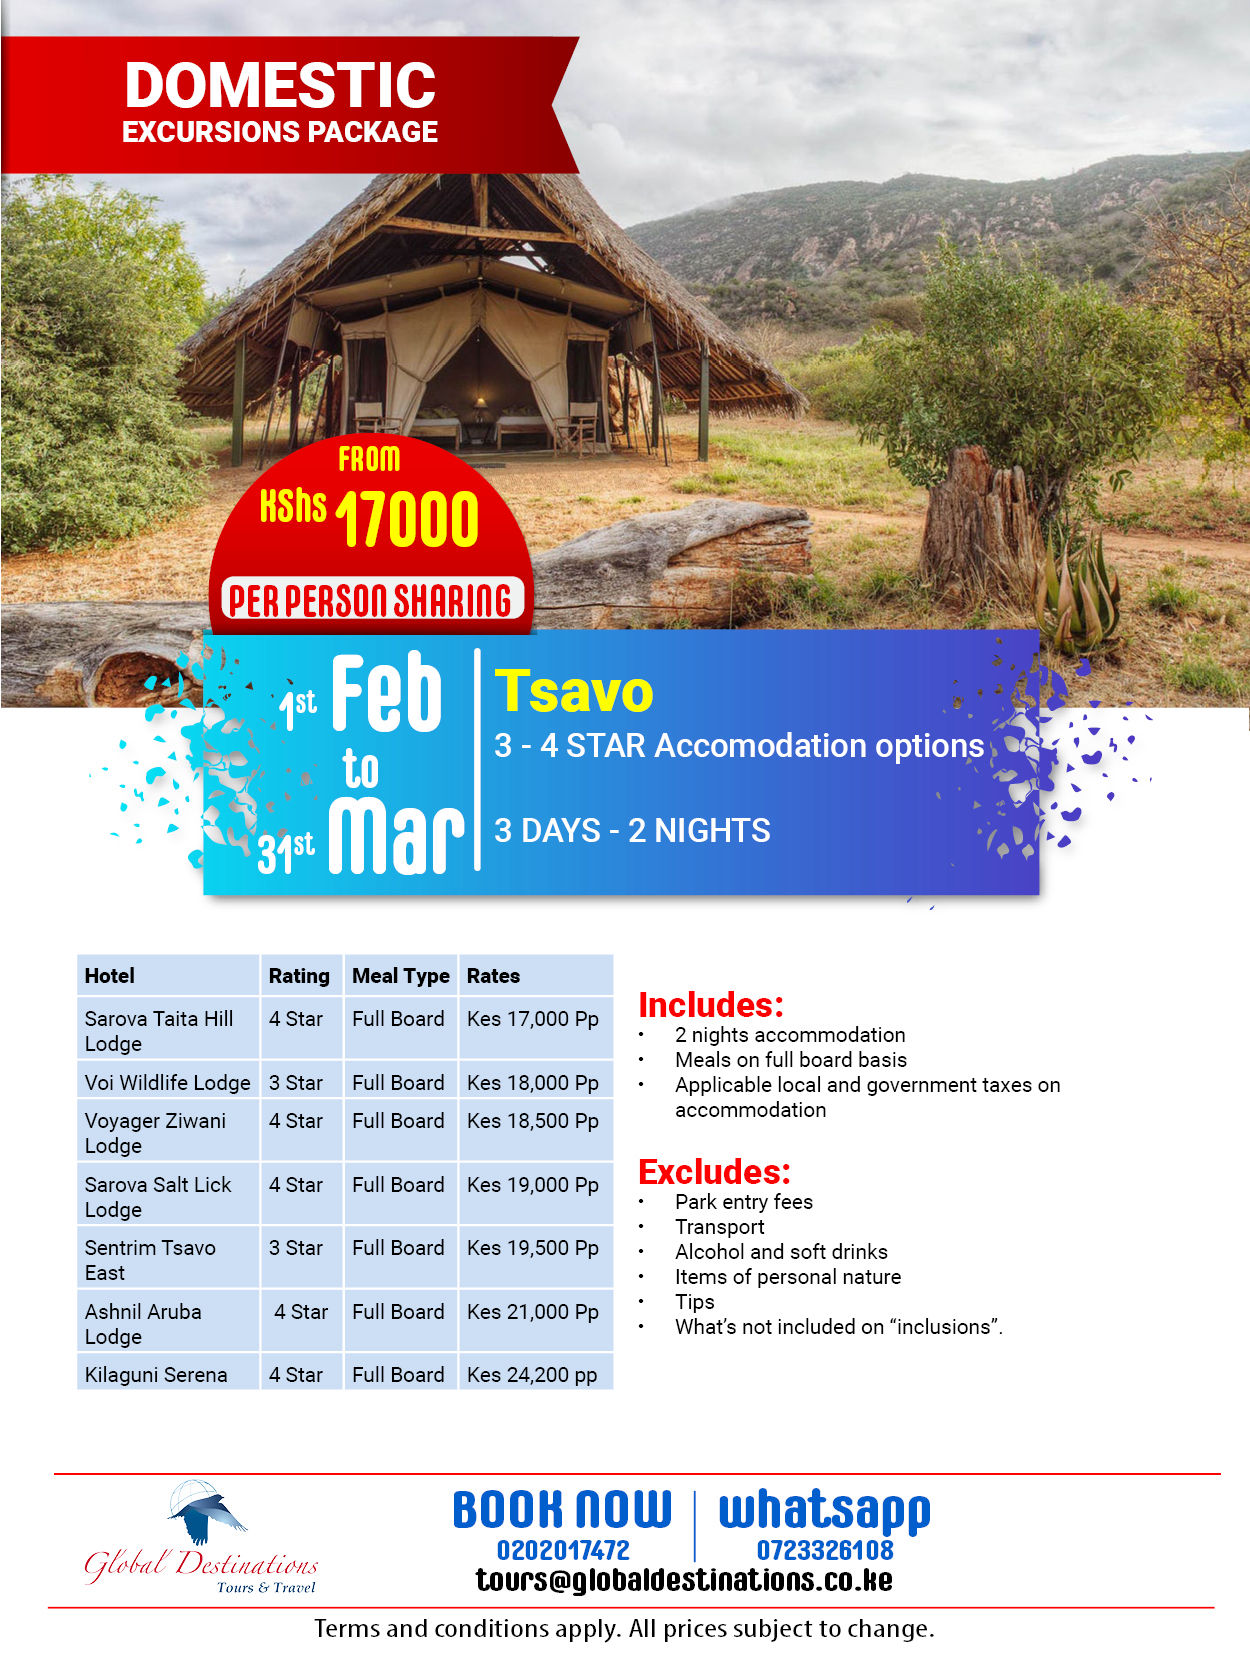 Tsavo Excursion 3 Days - 2 Nights